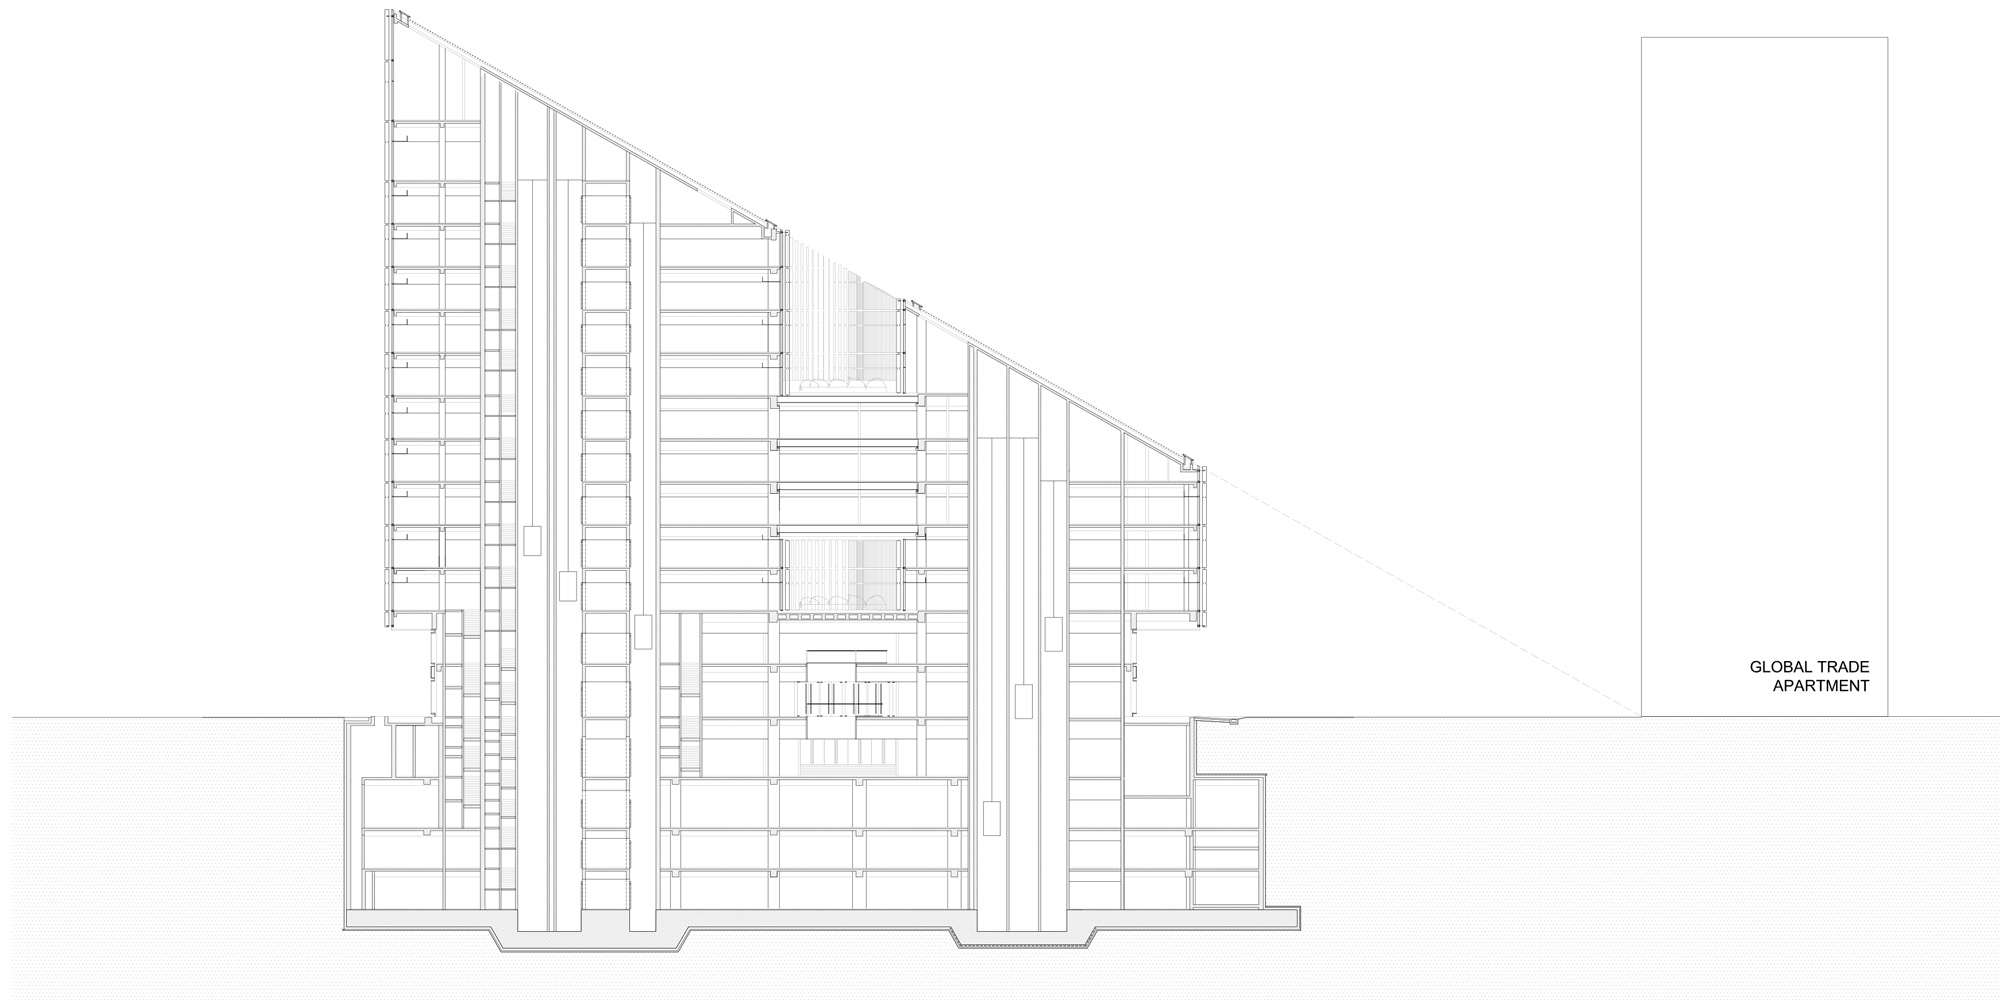 Sezione © gmp - von Gerkan, Marg and Partners Architects